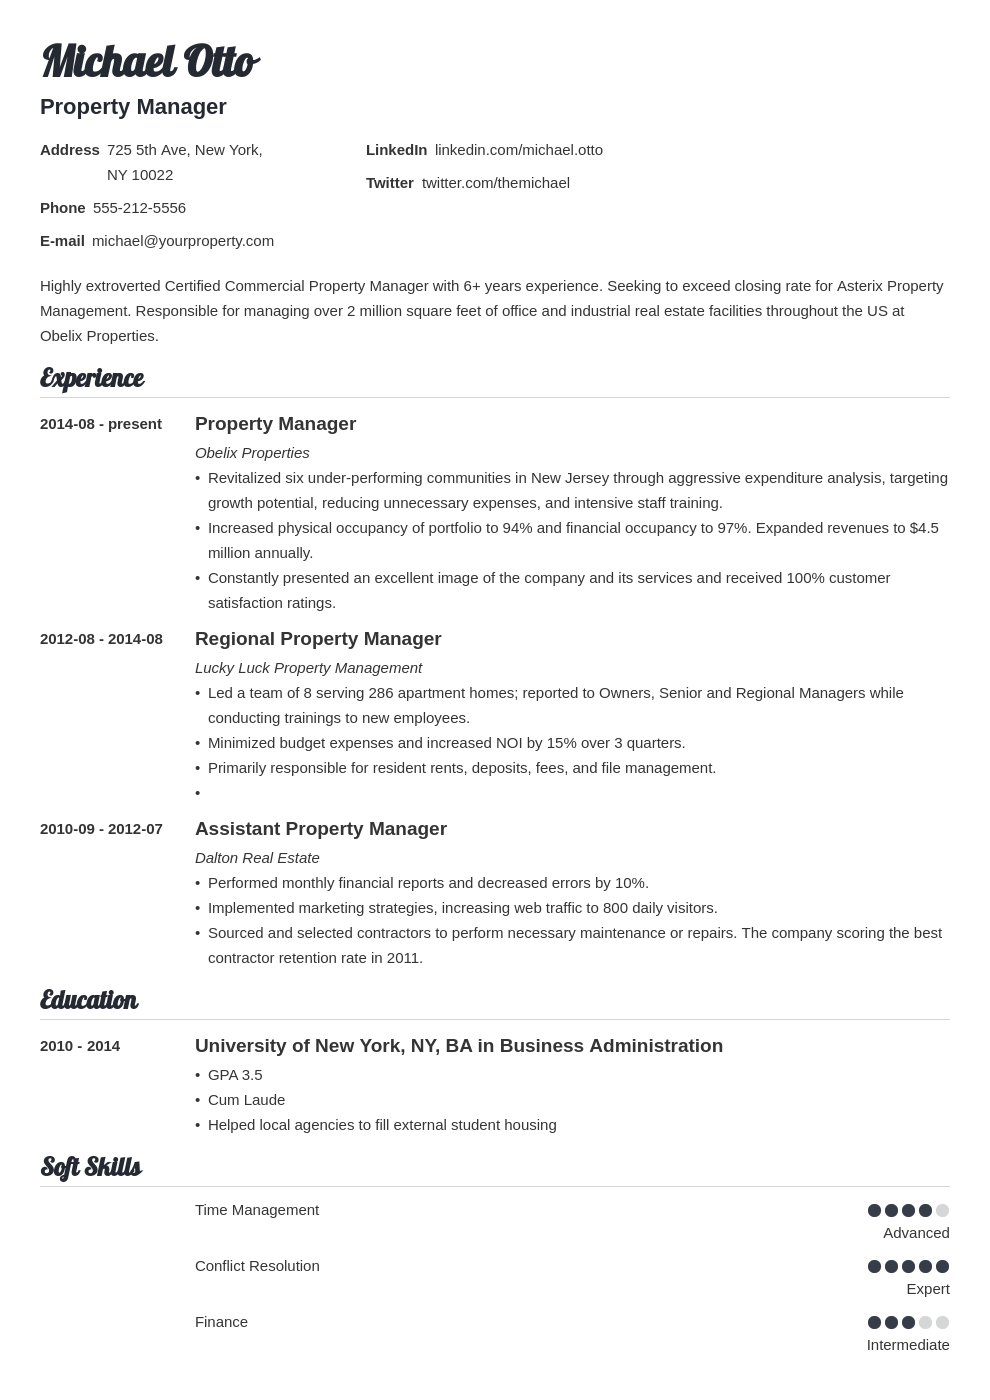 Property Manager Resume Sample Job Description 20 Tips